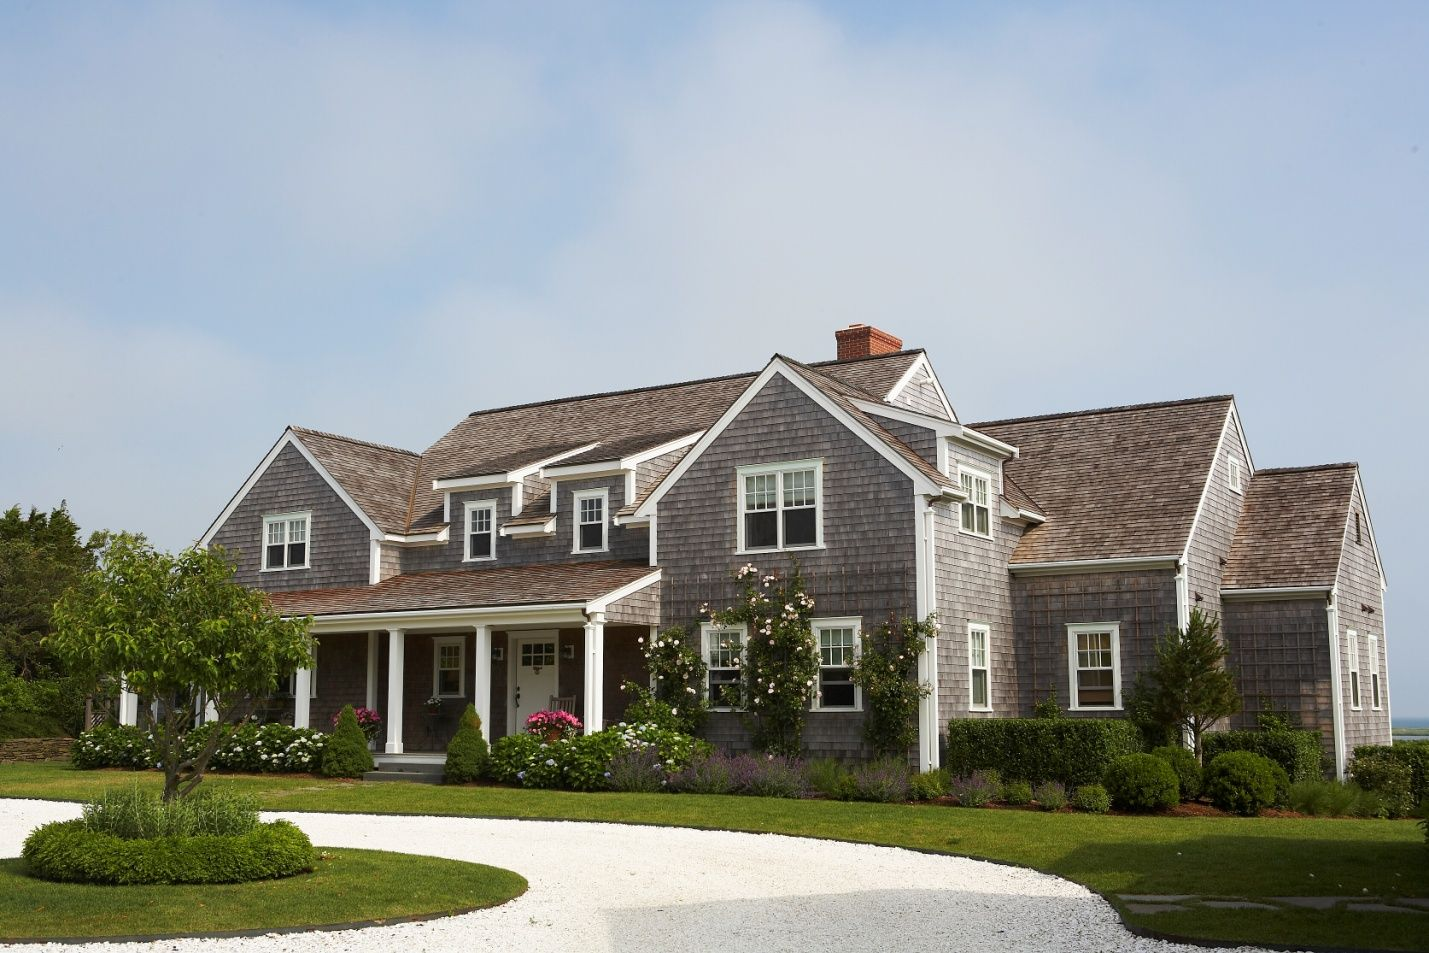 Delicieux Images Of Nantucket Style Shingle Homes | The 2013 Houston Symphony Ball  Auction: Arts